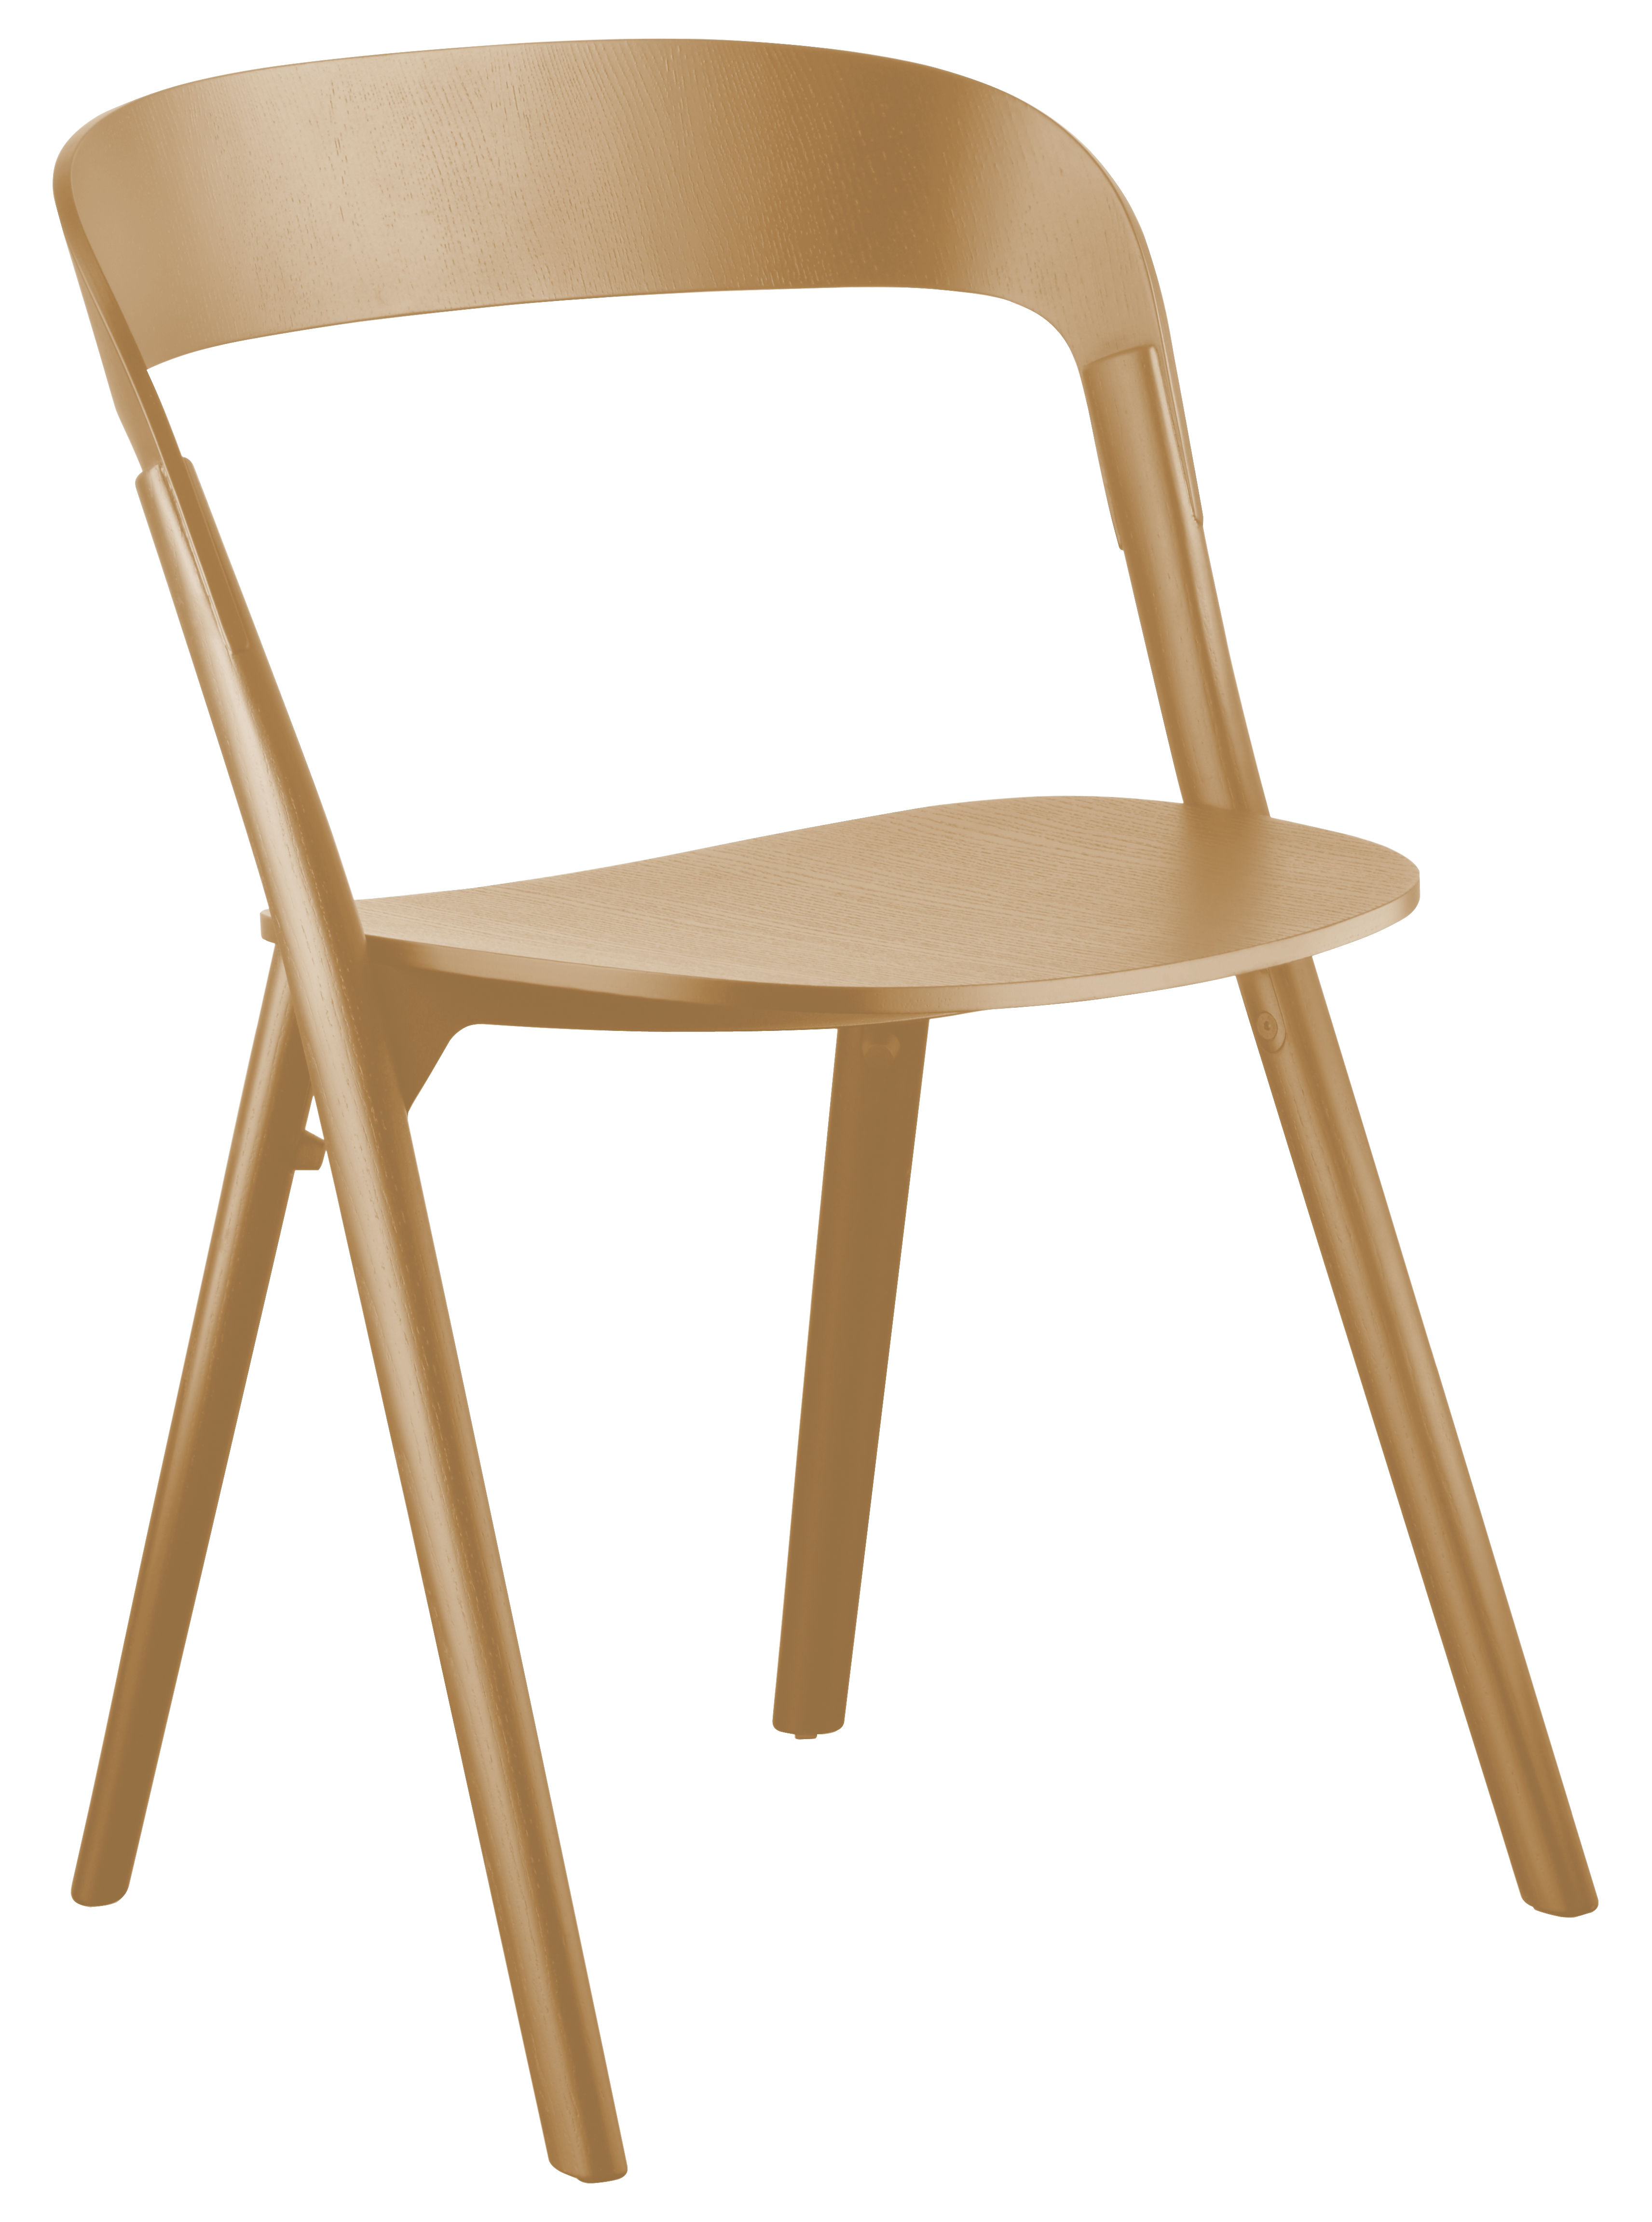 Pila stacking chair wood natural wood by magis for Magis chair